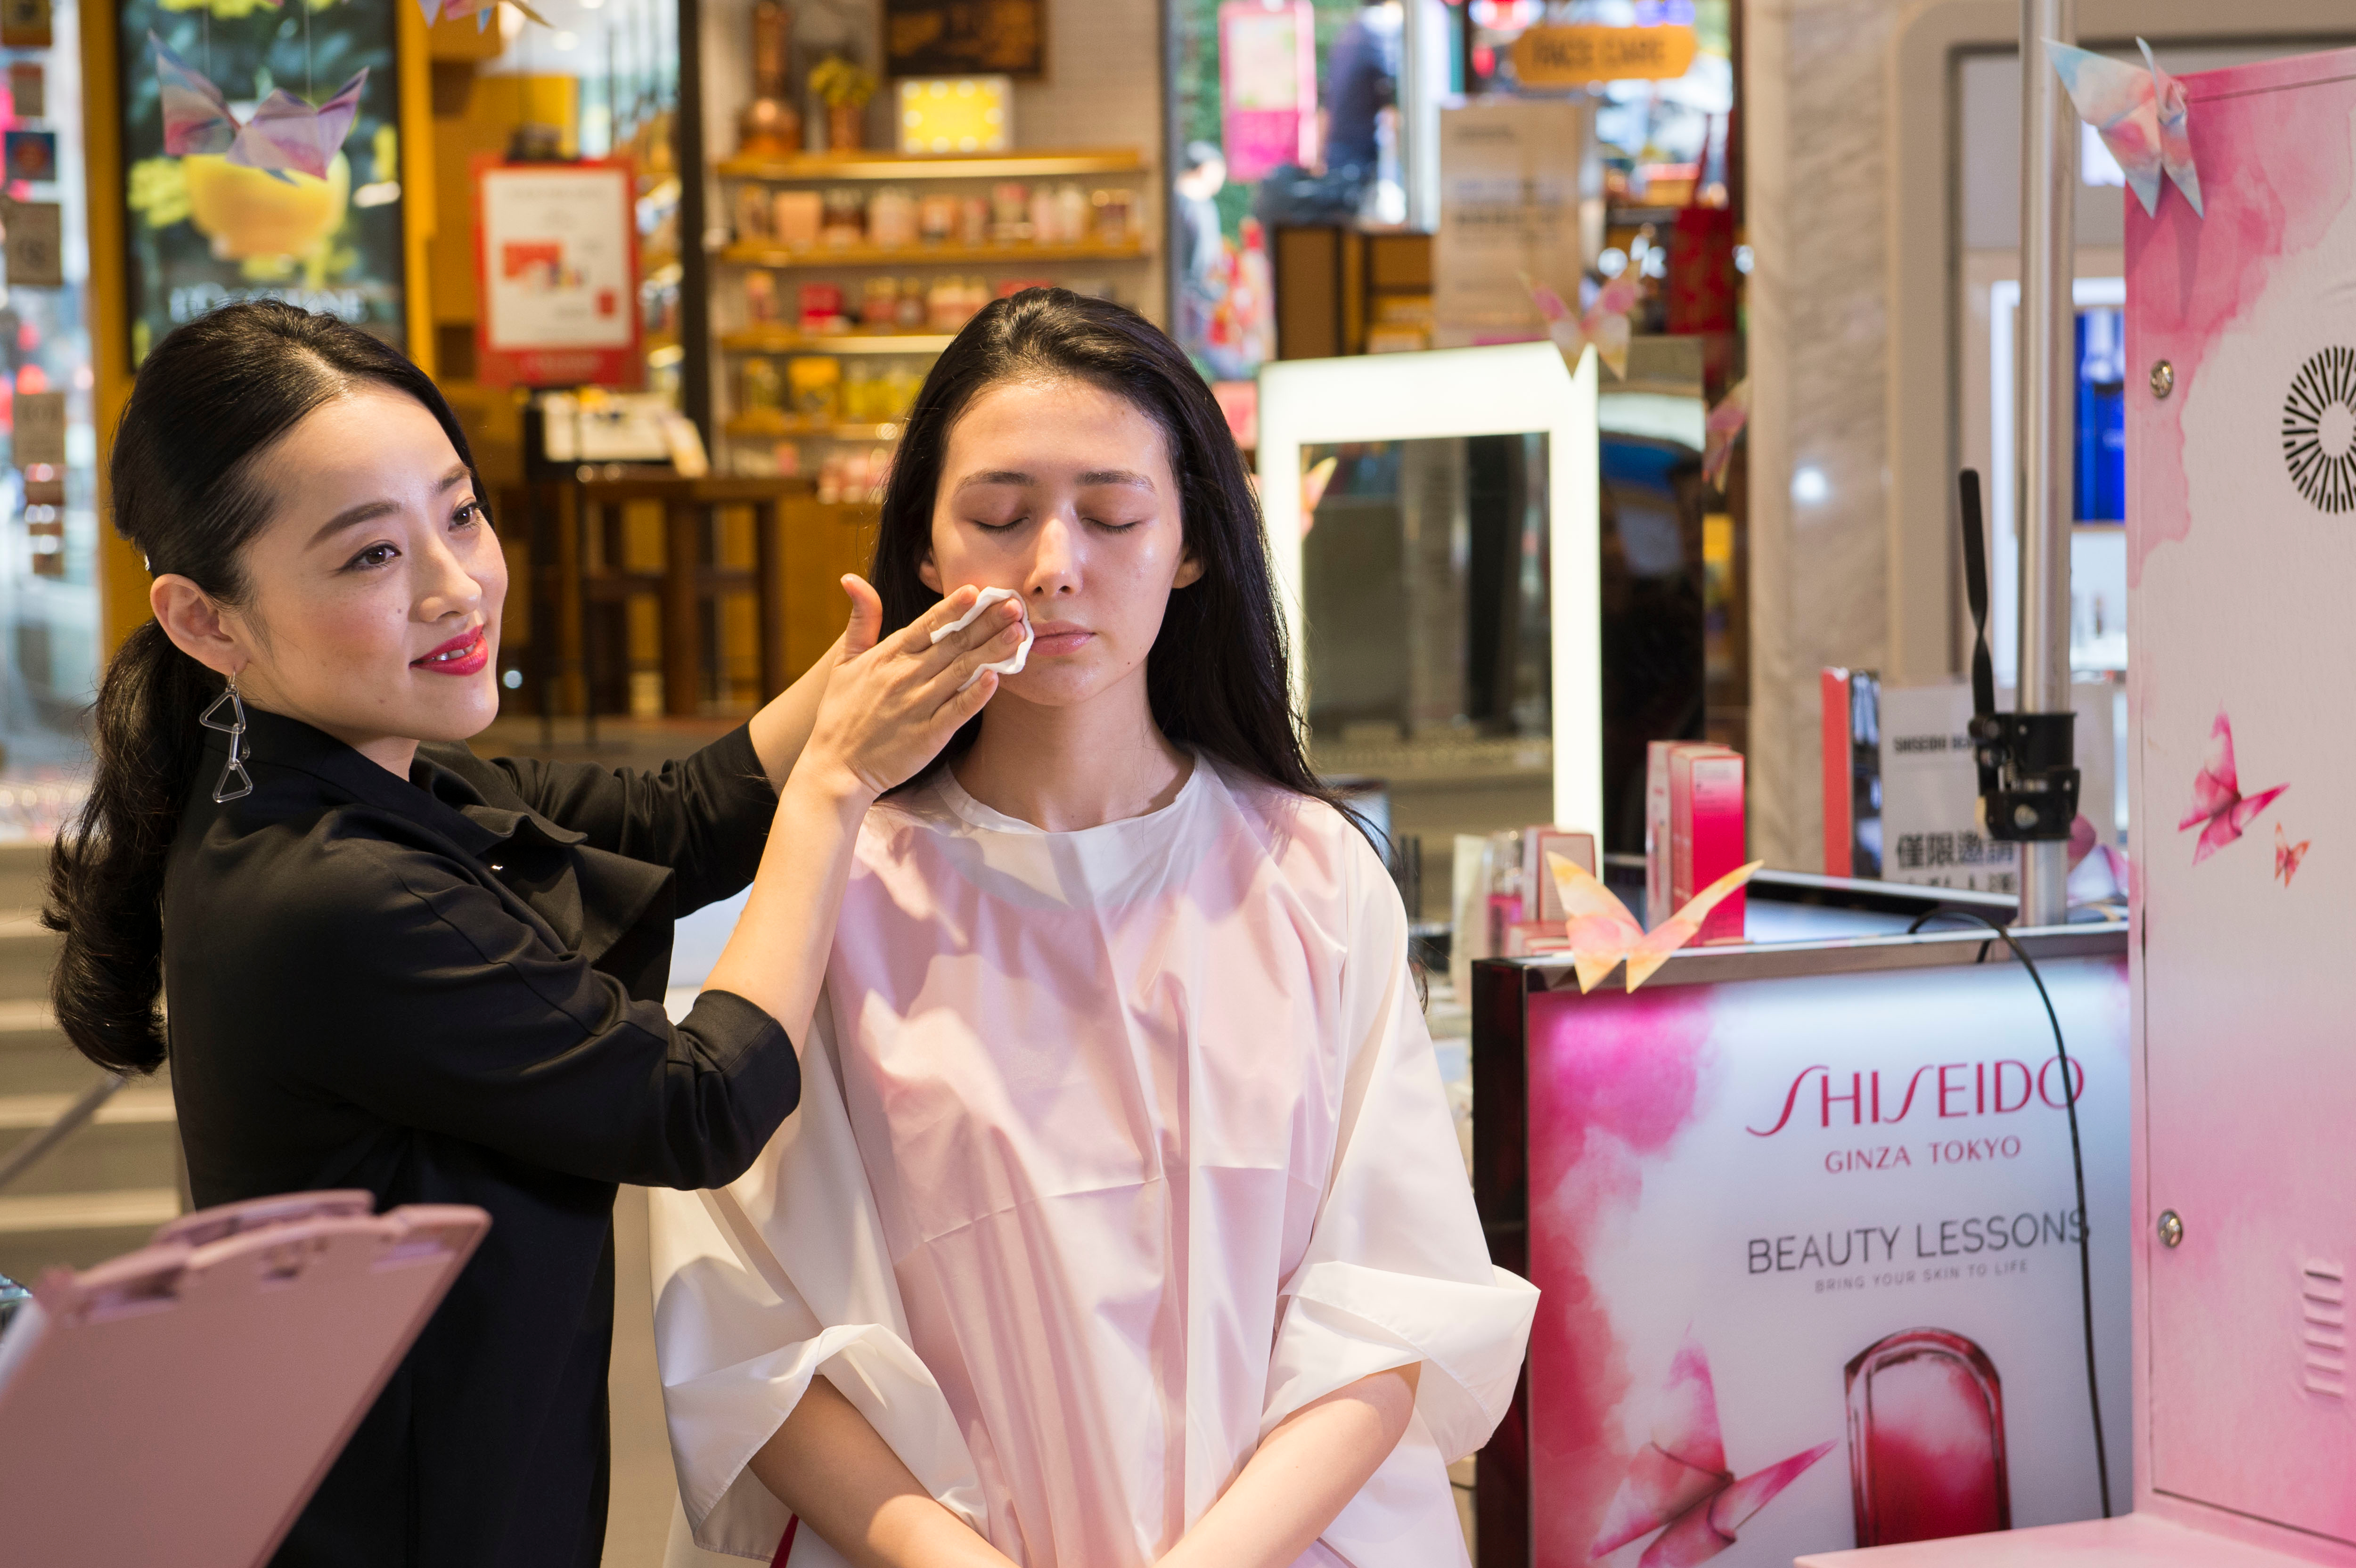 Shiseido. Looking for skin care products that will make your face and body truly shine? Search no further than Shiseido. With an extensive variety of moisturizers, serums and facial treatments, you can feel confident in the brand's time-honored legacy of effective and soothing skin care.